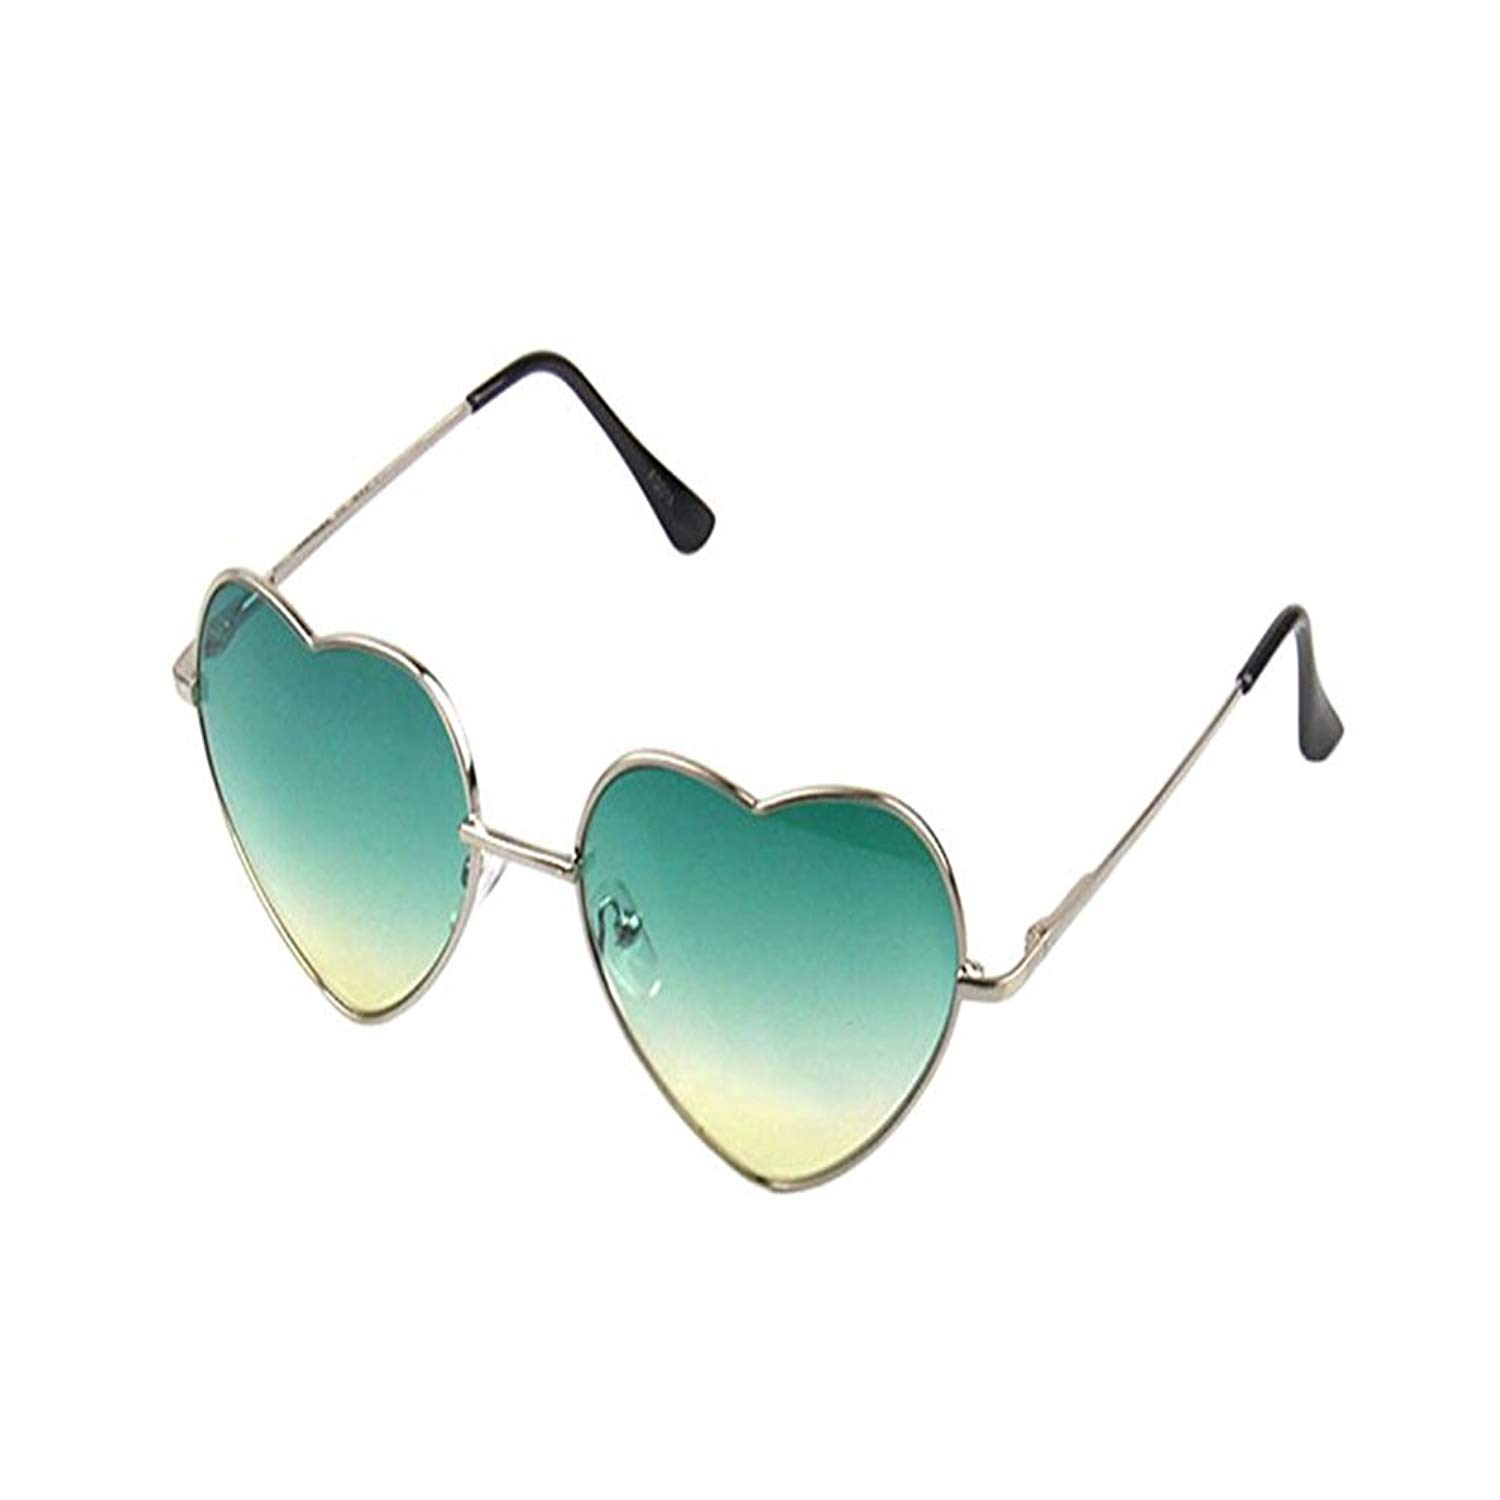 4677960531 Get Quotations · Meyison Vintage Heart Shaped Sunglasses Thin Metal Frame  Cute Aviator Style Eyewear for Women or Men